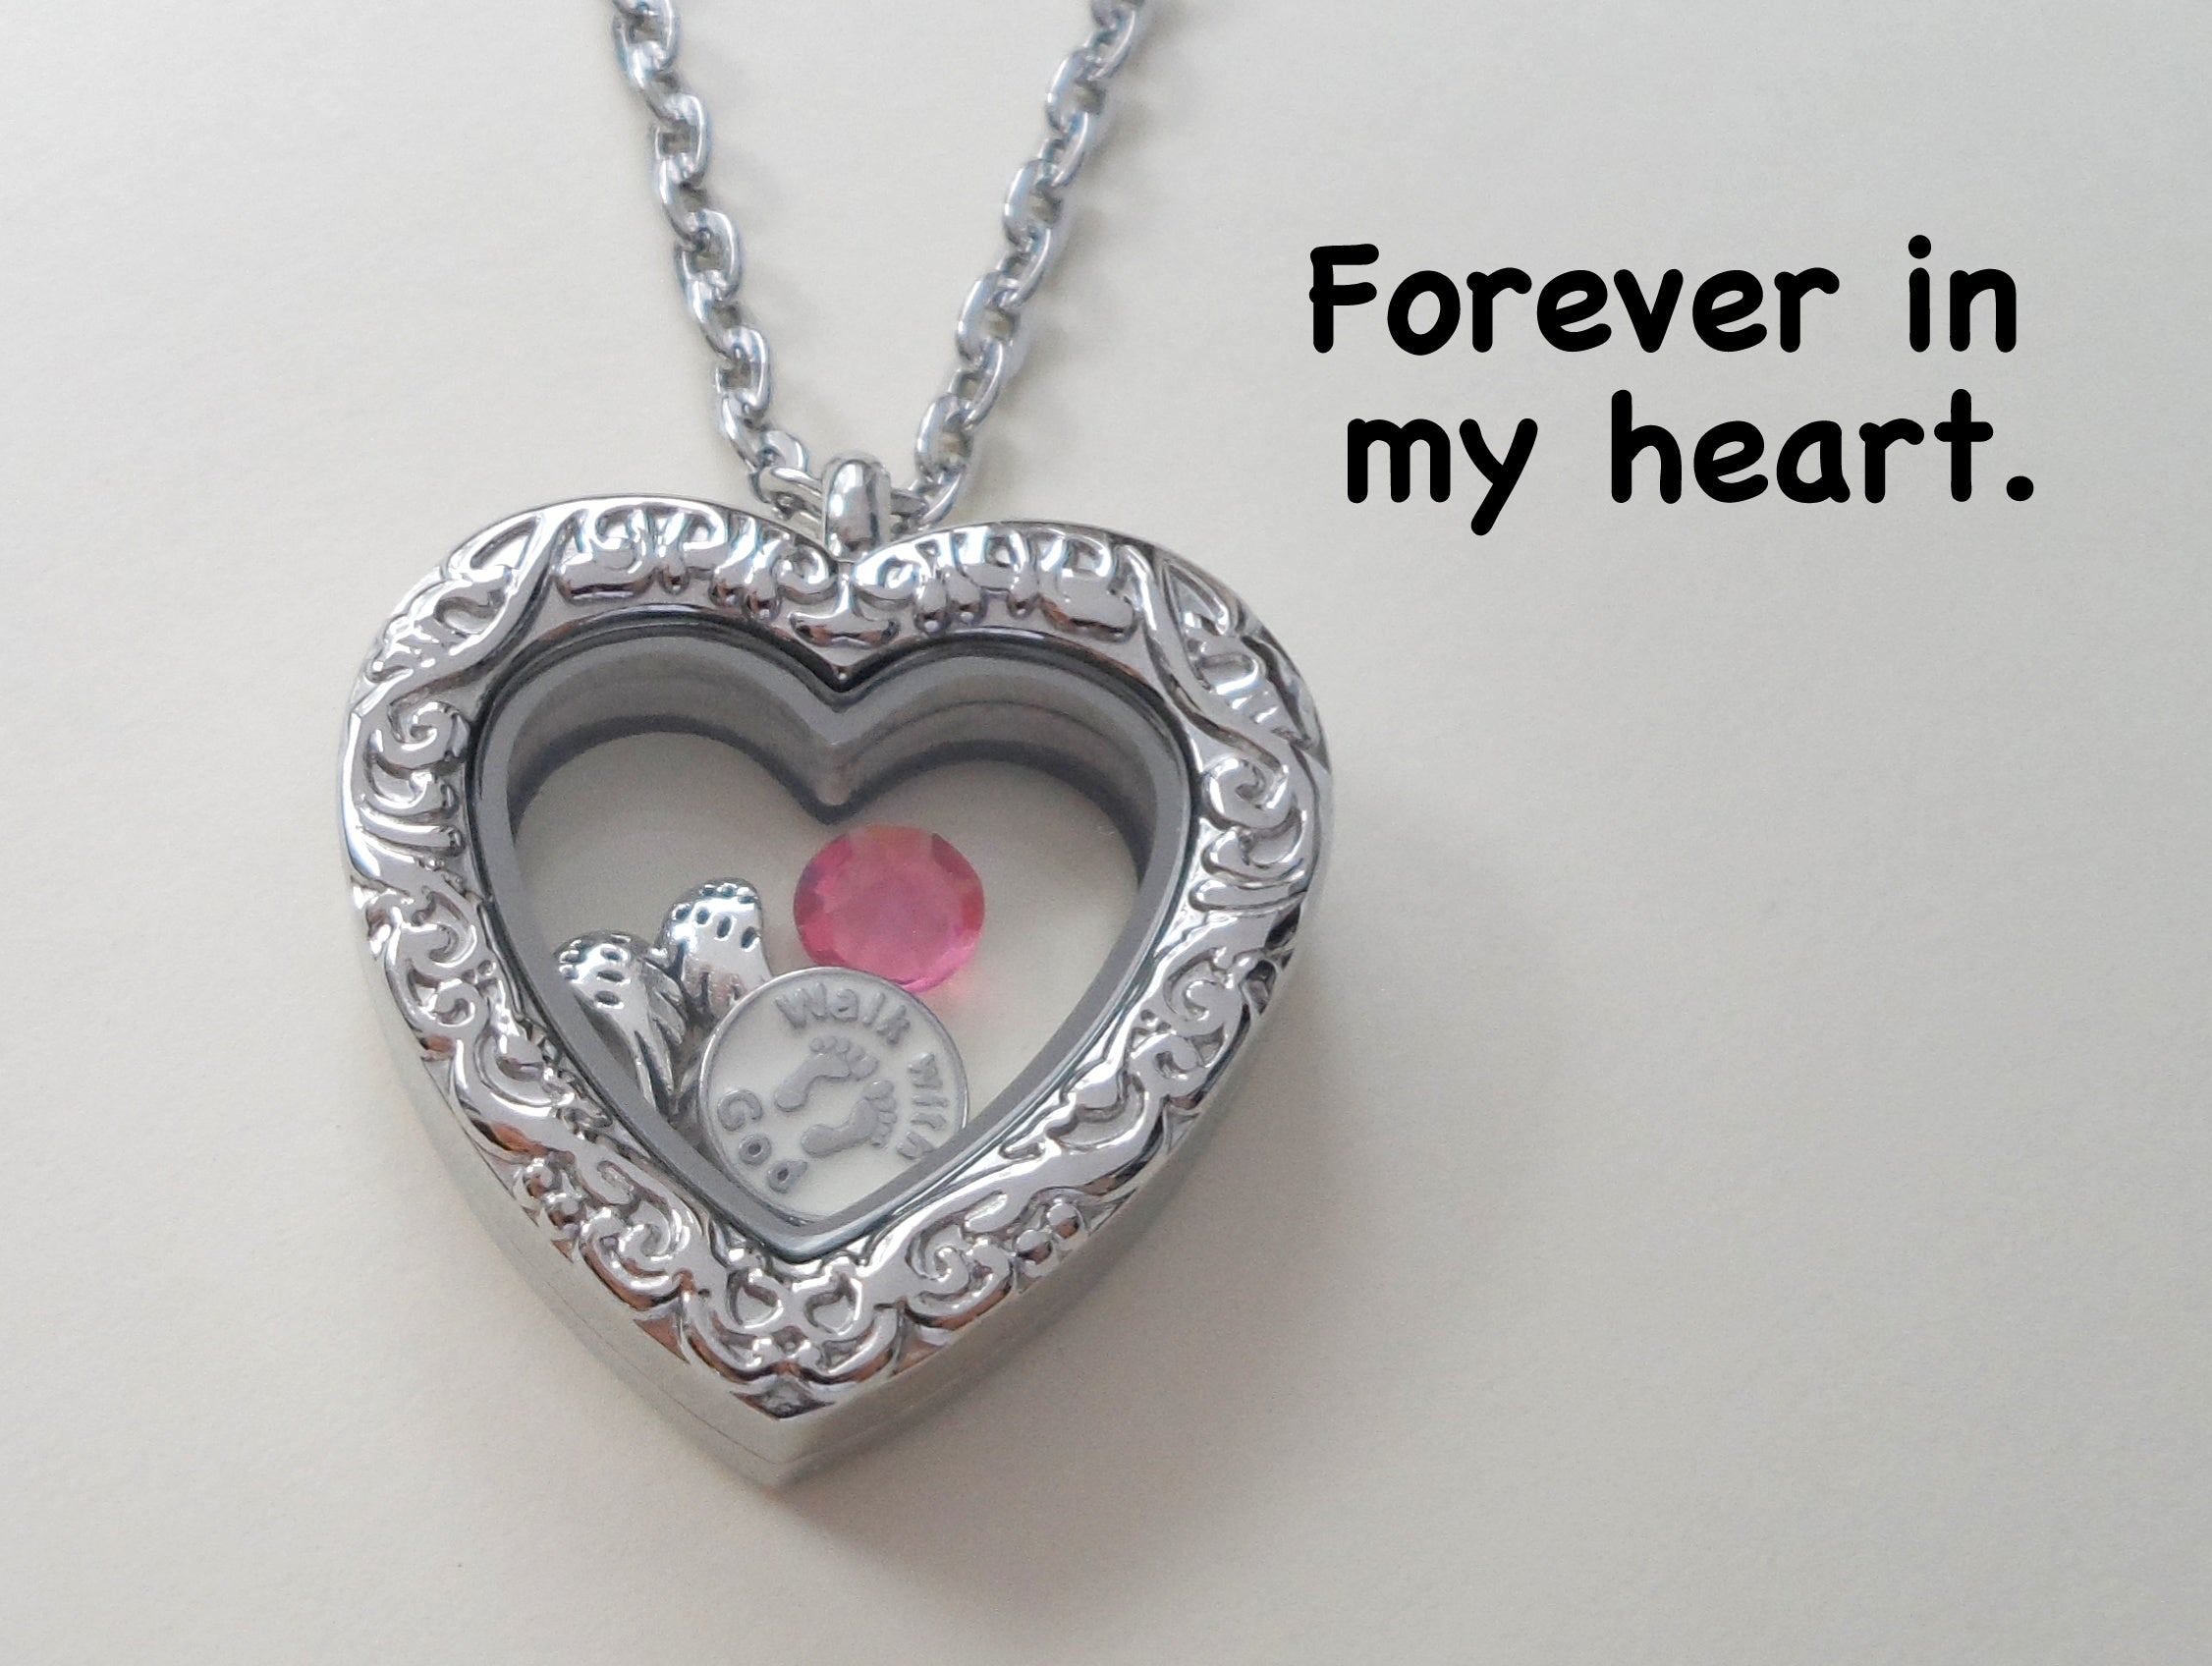 products locket memory sam personalized necklace steel forever floating baby stainless in memorial infant my loss heart